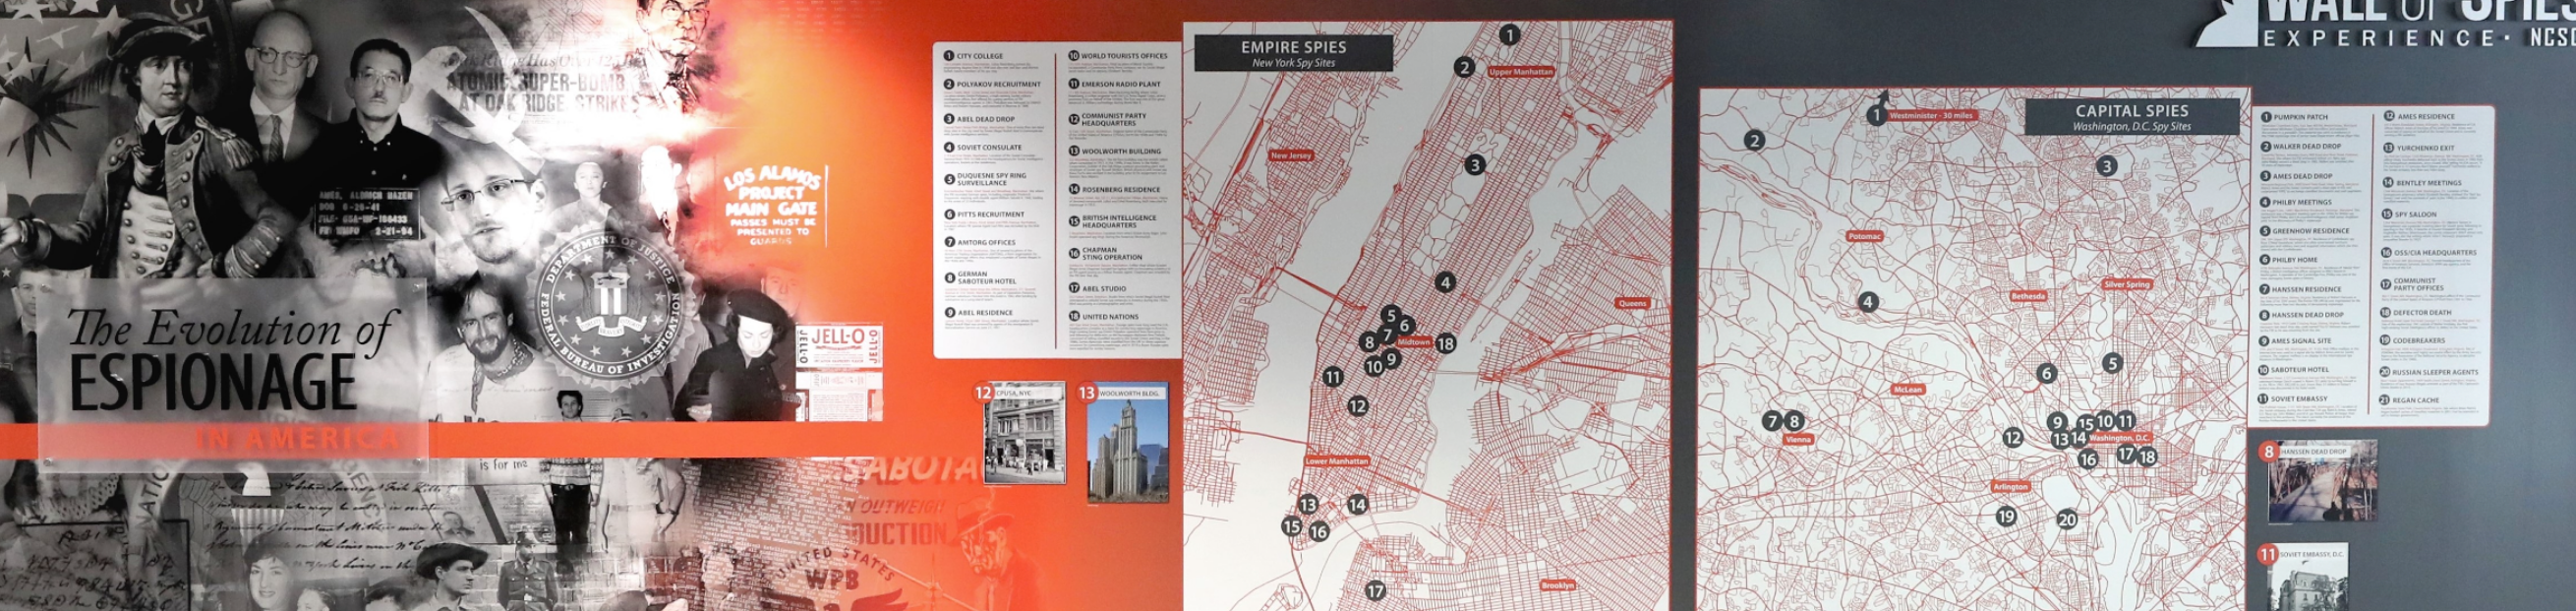 an image of The Wall of Spies Experience including detailed accounts of more than 135 spies who betrayed America